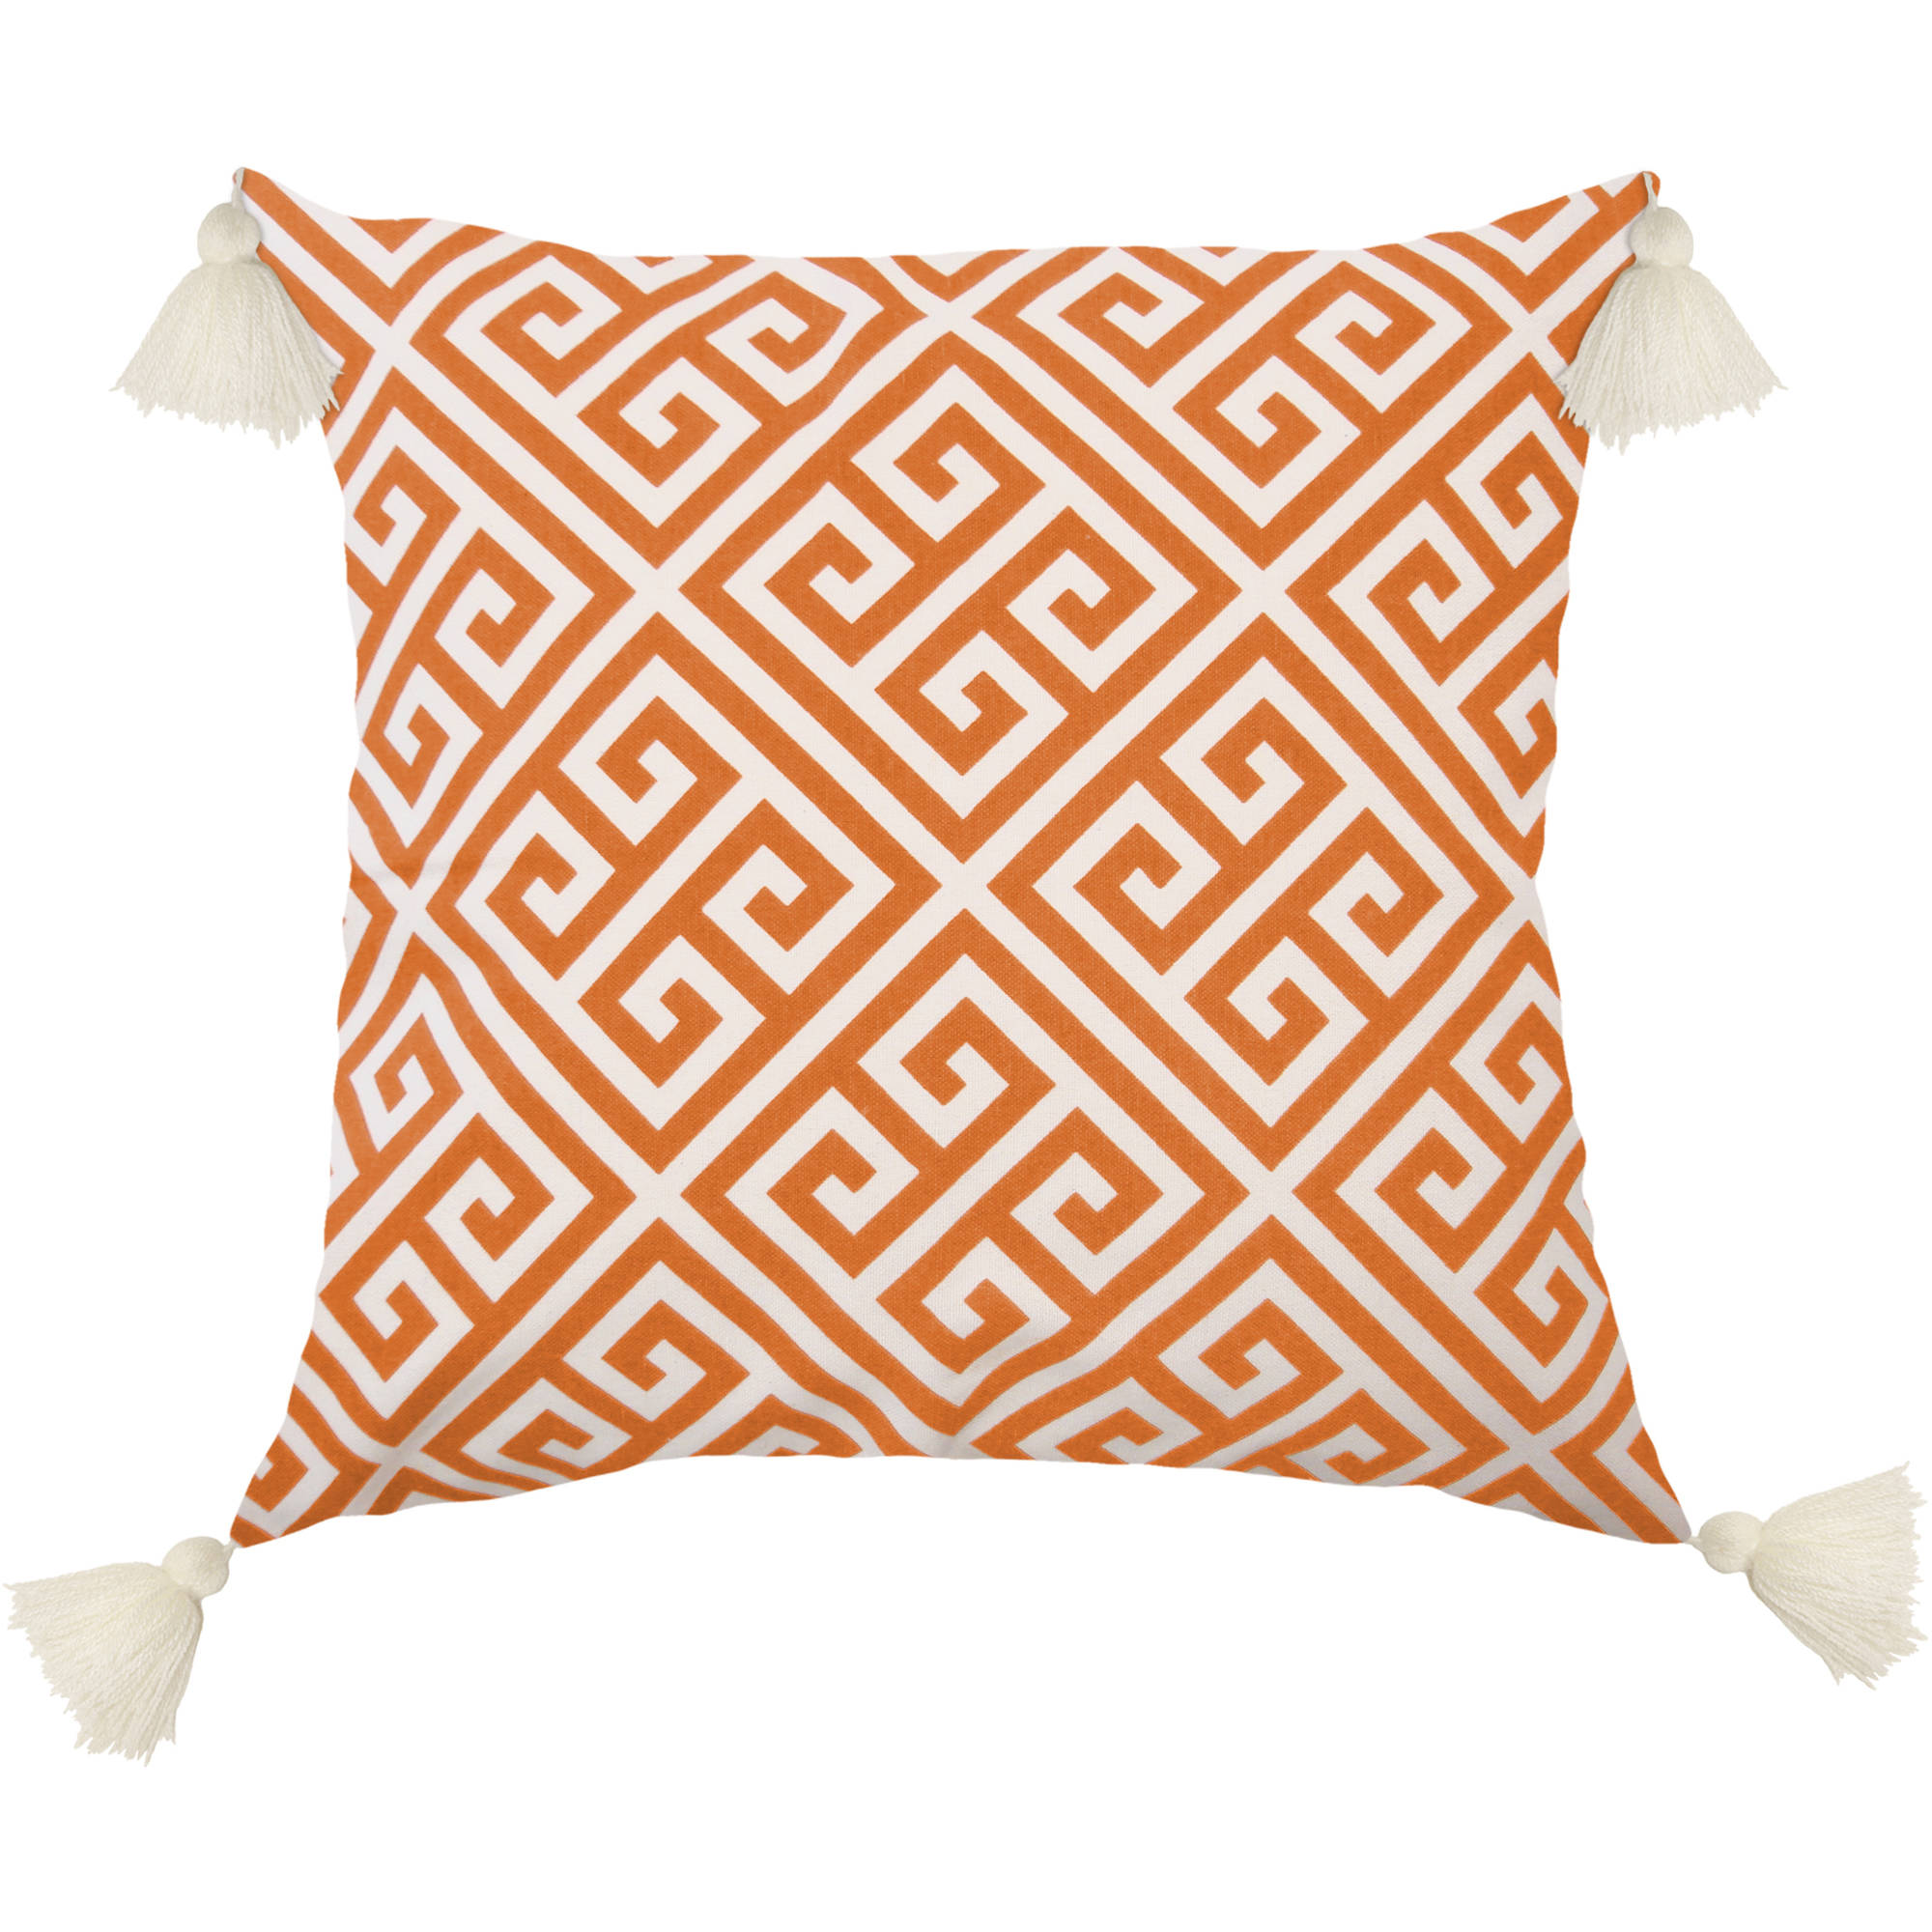 "Better Homes and Gardens Greek Key 18"" x 18"" Poly/Cotton Fabric Contemporary Print Pillow with 4 Decorative Tassels"